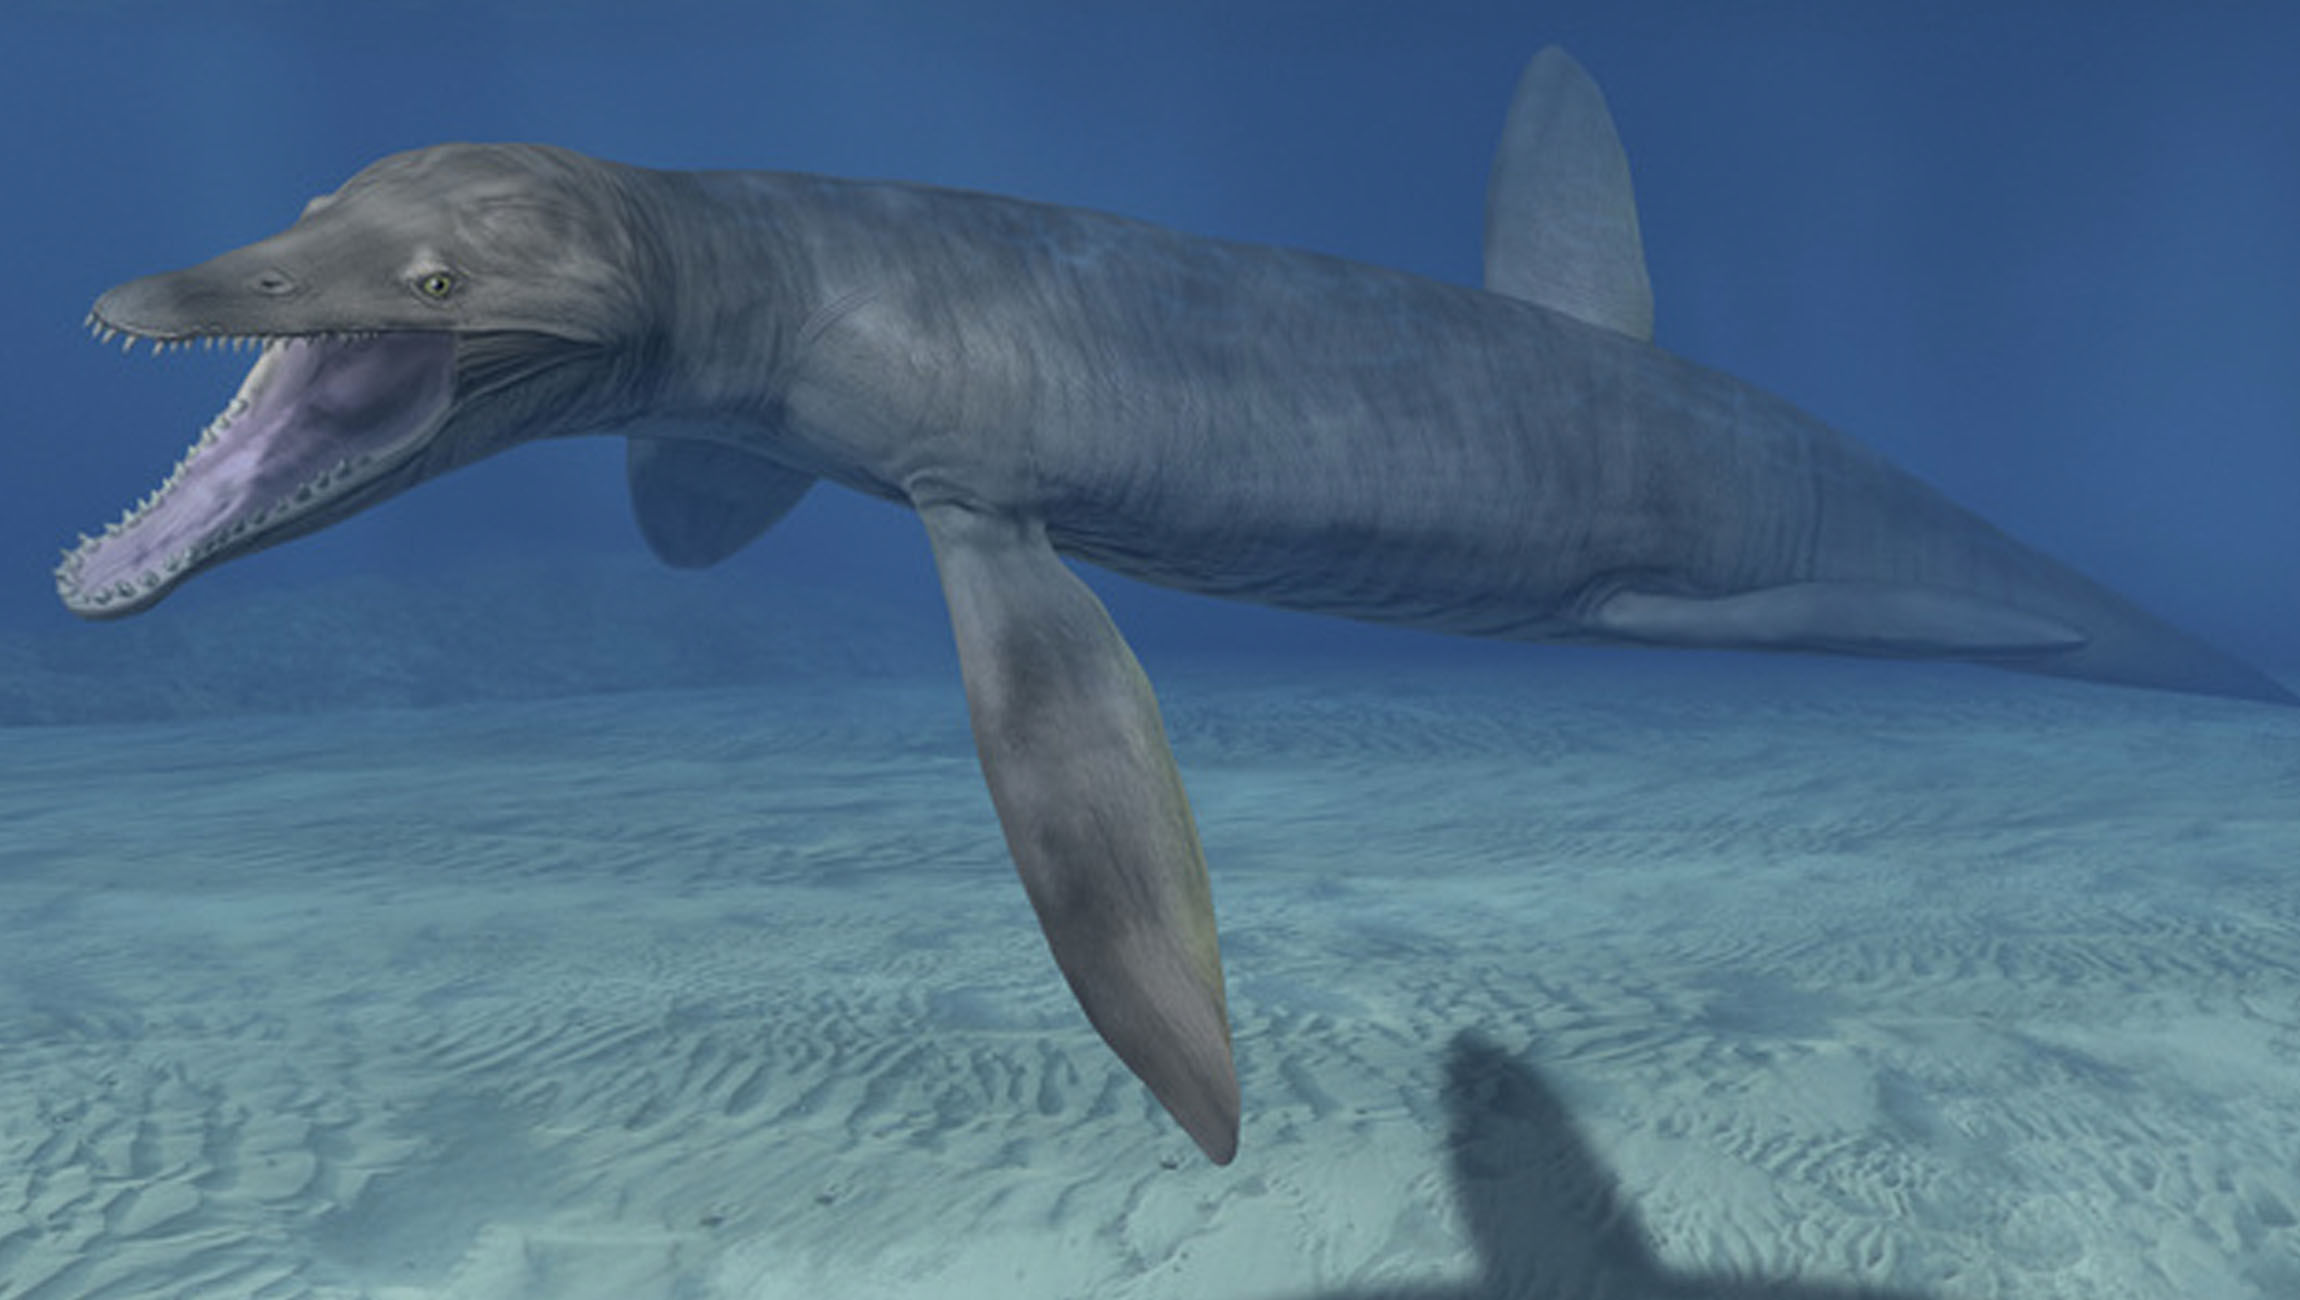 Nessie's got nothing on this newly unearthed, razor-toothed sea monster